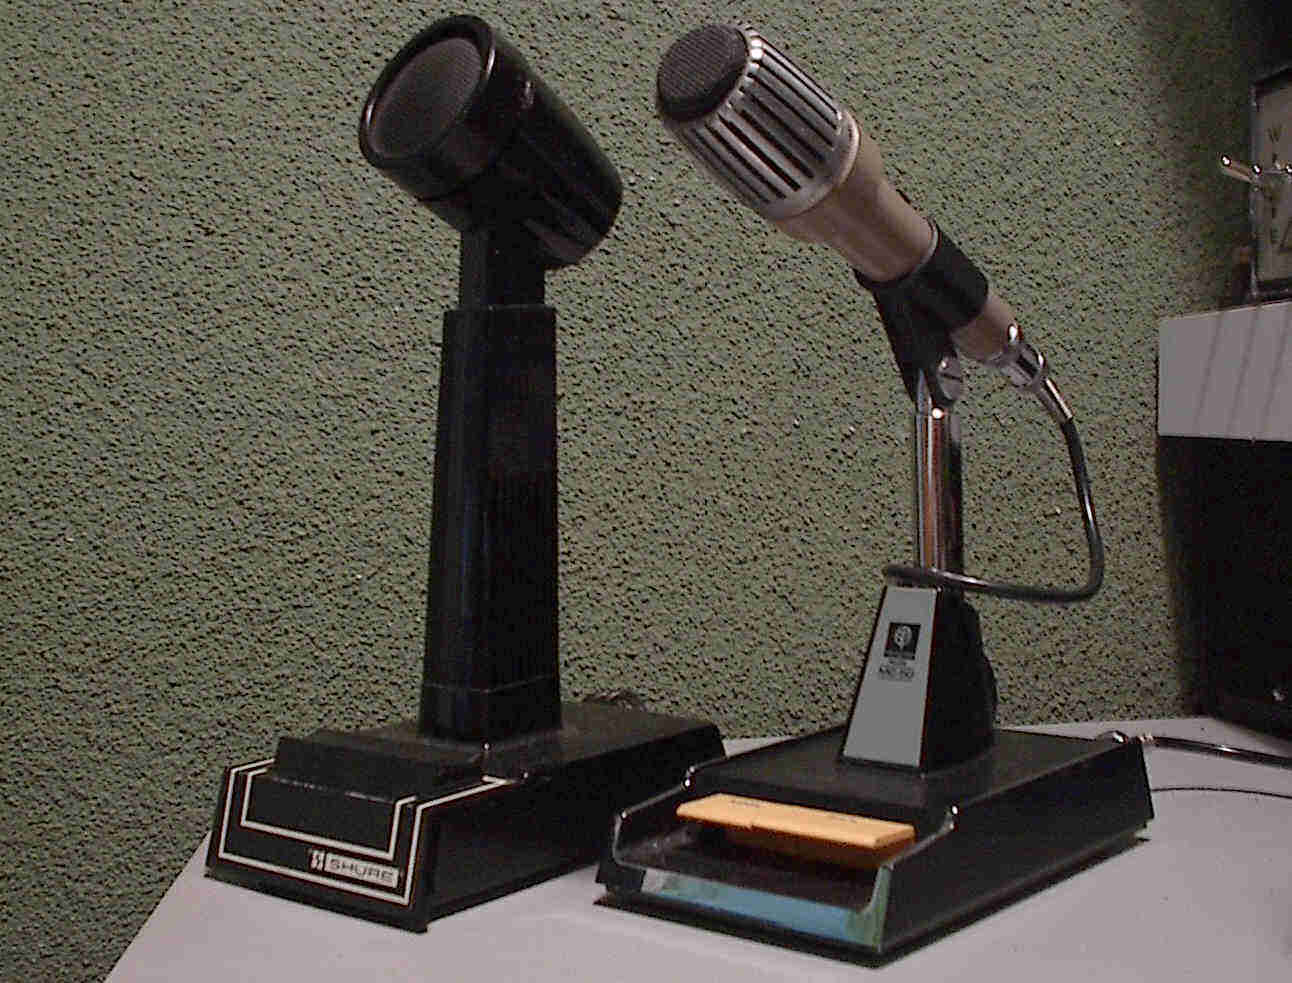 Shure 444d And Kenwood Mc